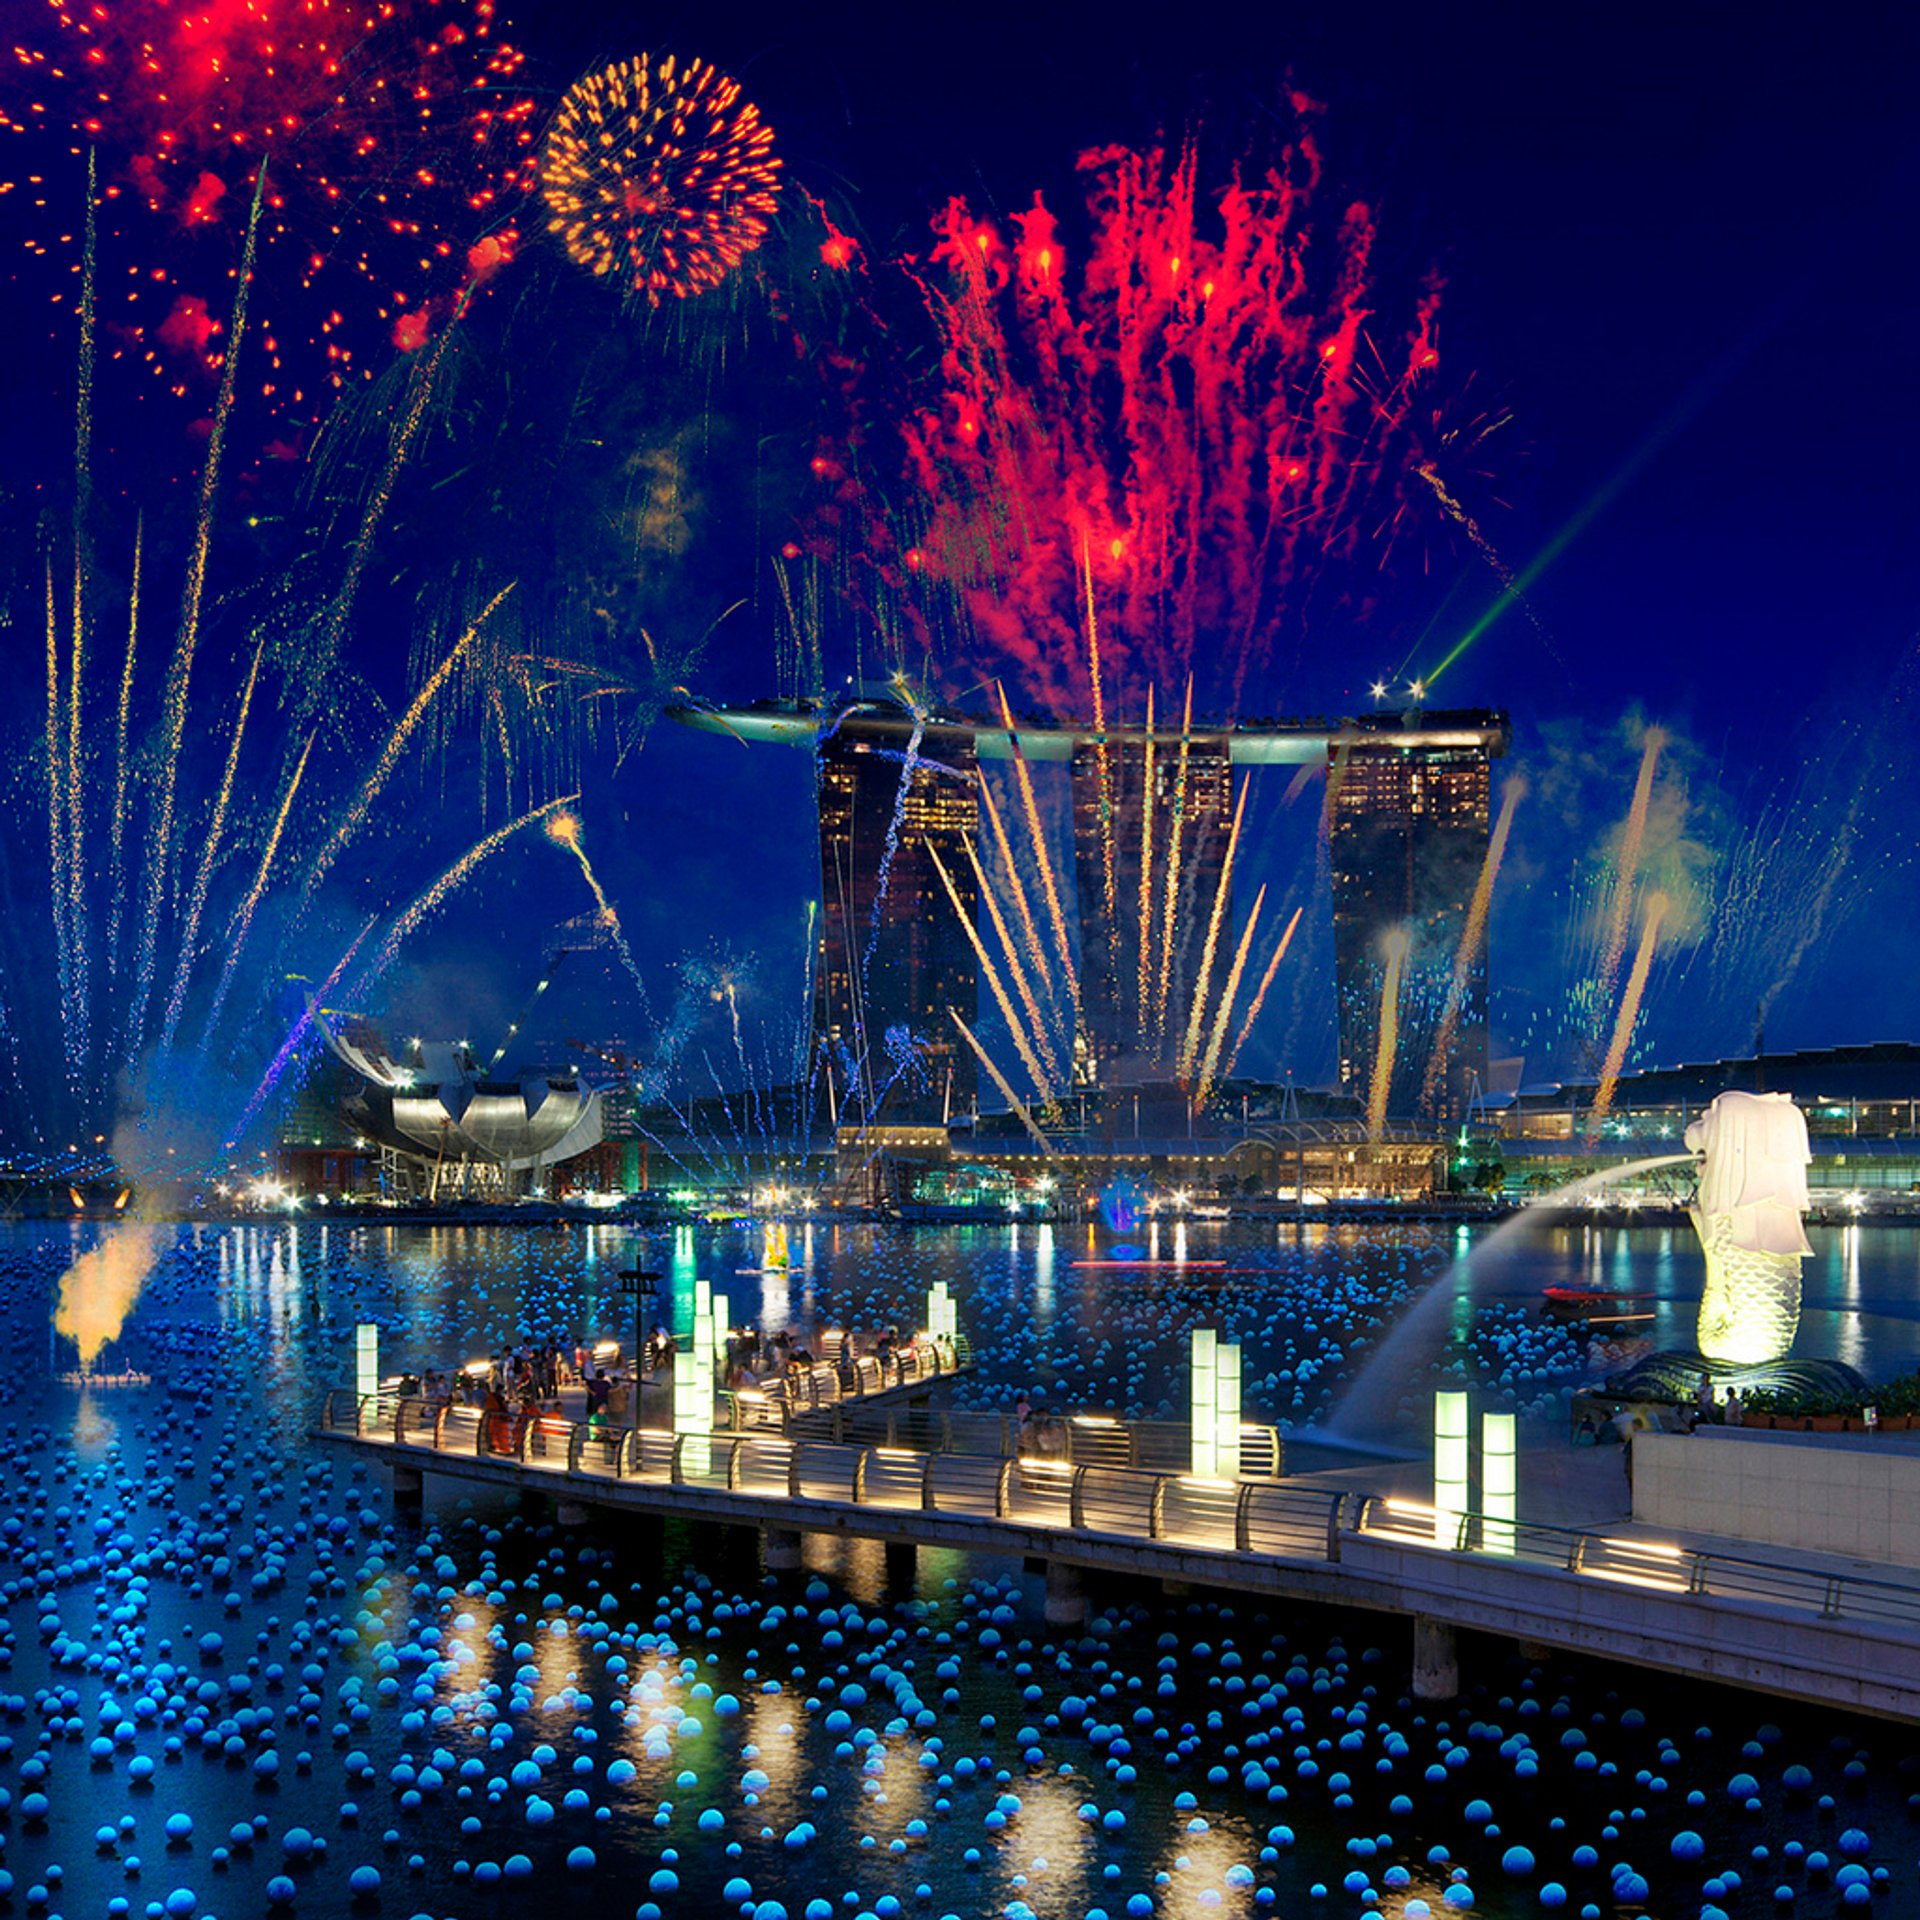 Marina Bay Singapore Countdown in Singapore 2019 - Best Time